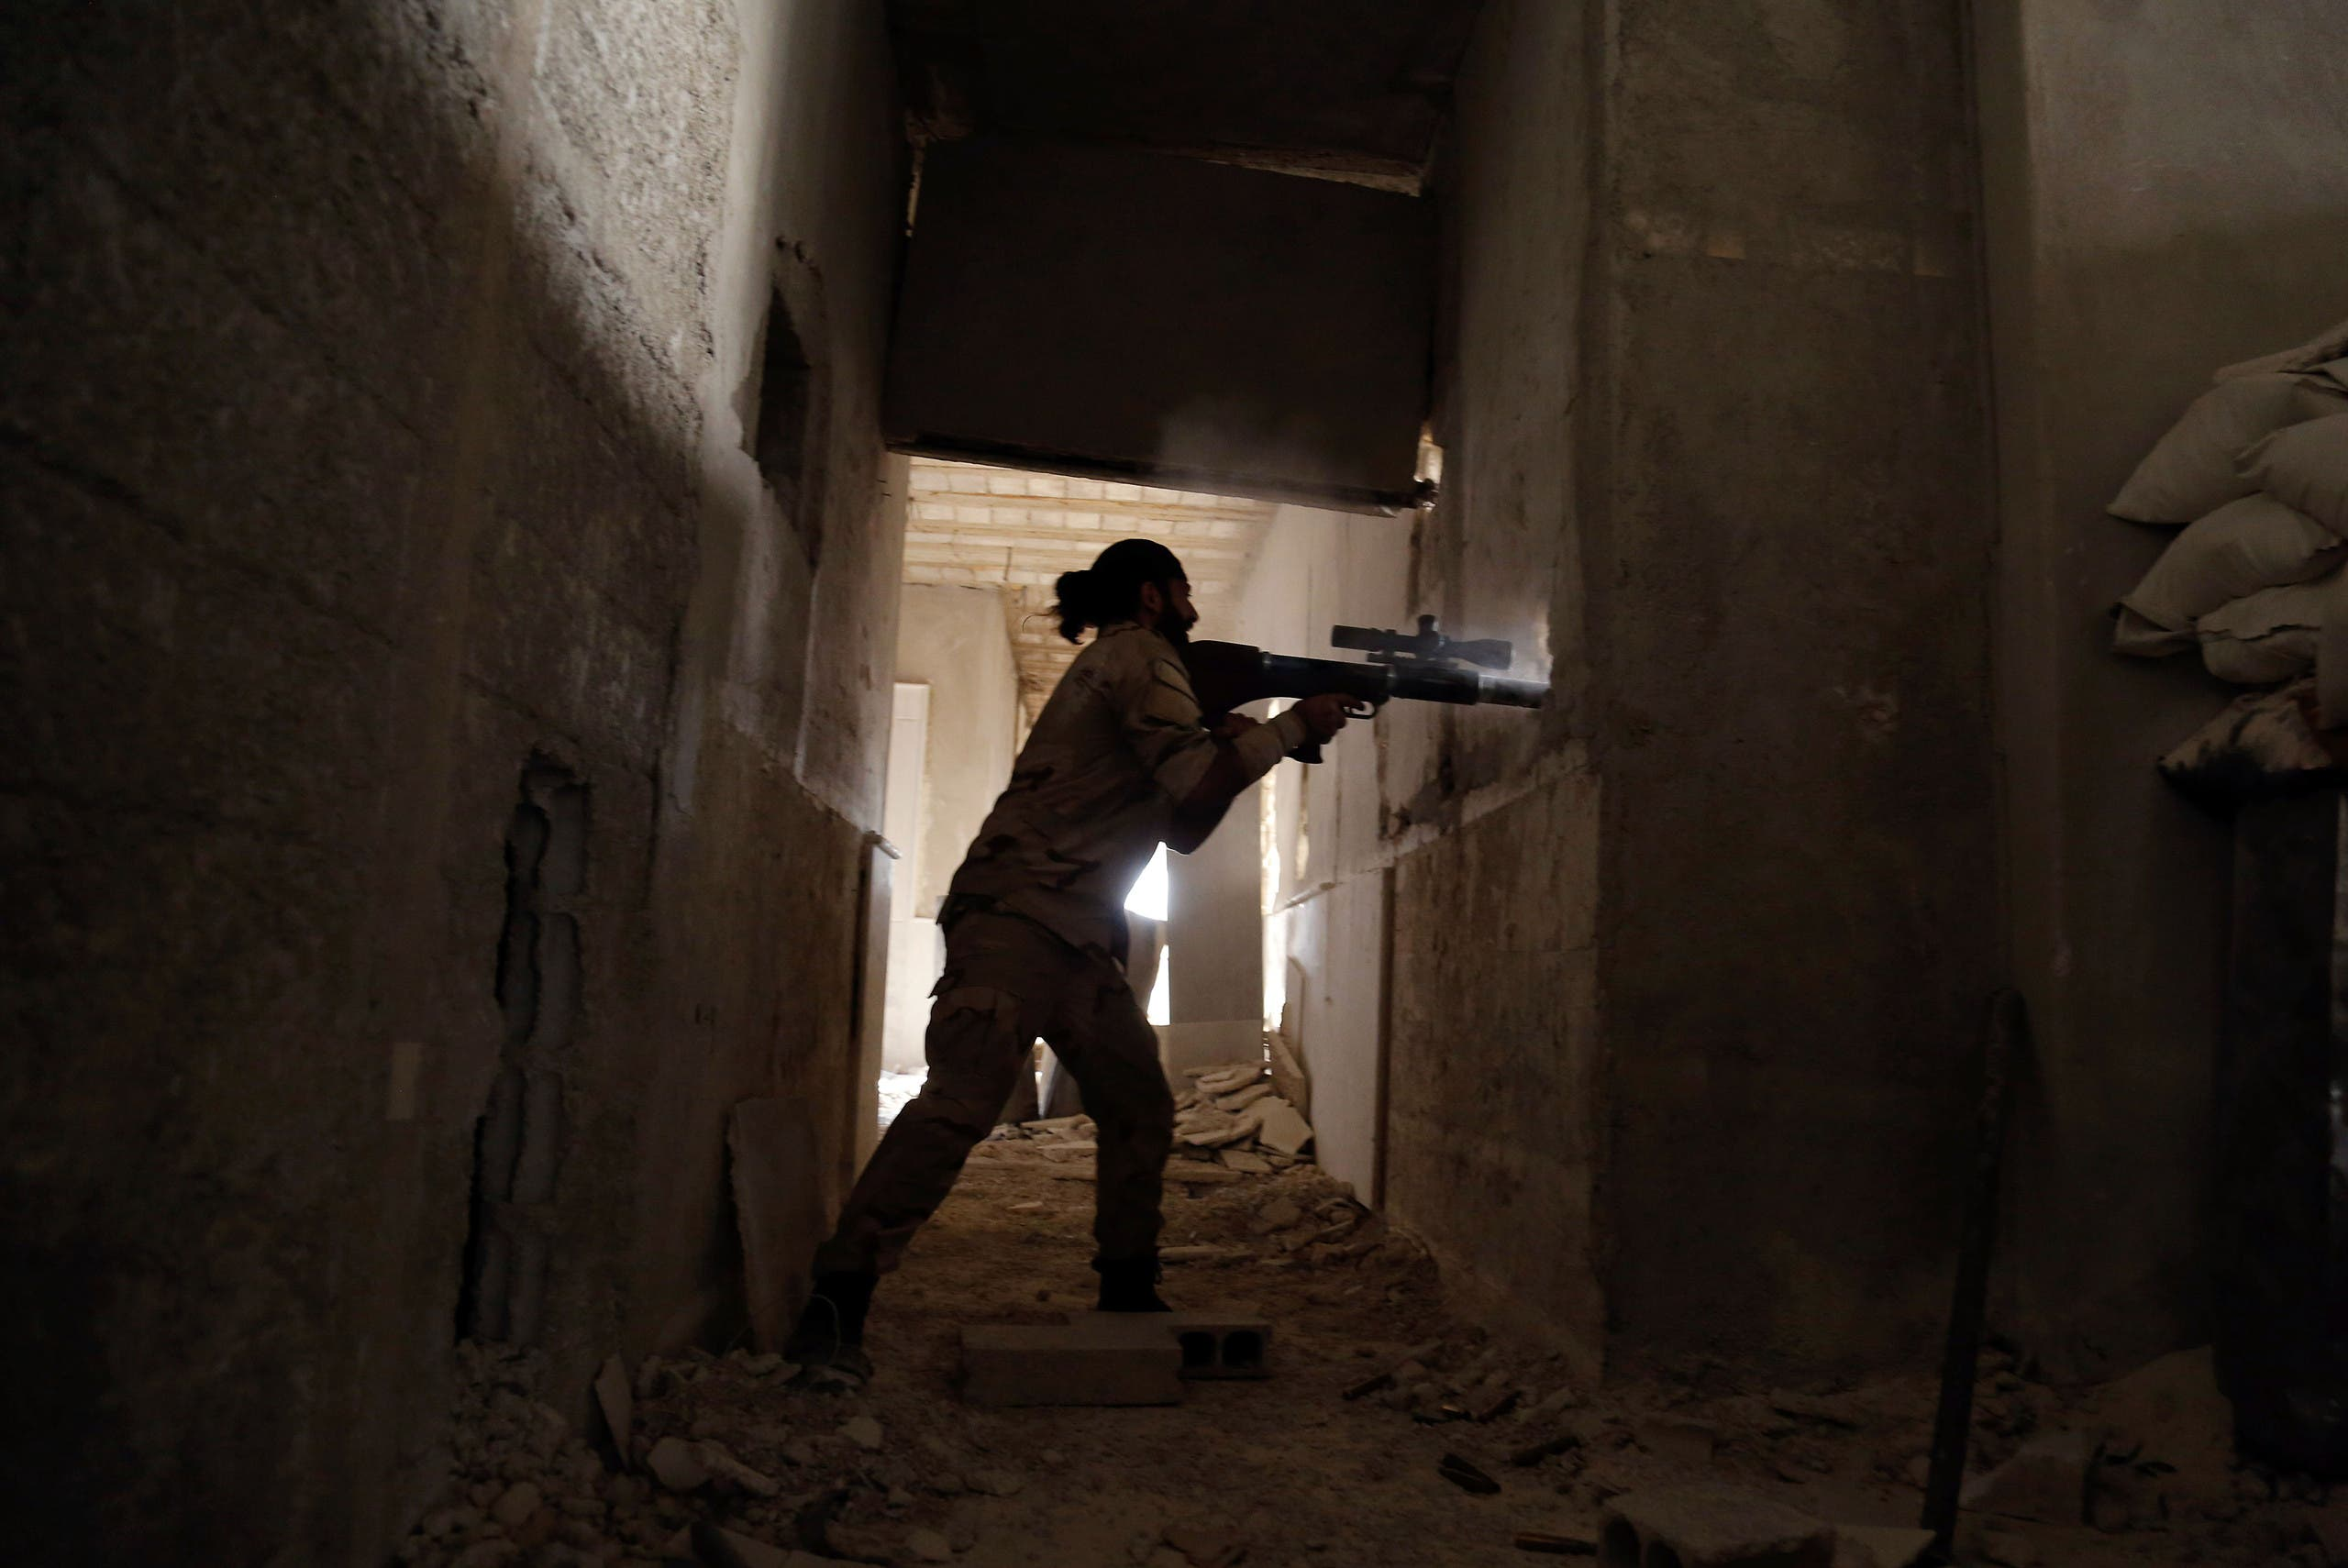 A Syrian rebel fighter fires a weapon in the eastern Ghouta area on July 17, 2017. (AFP)